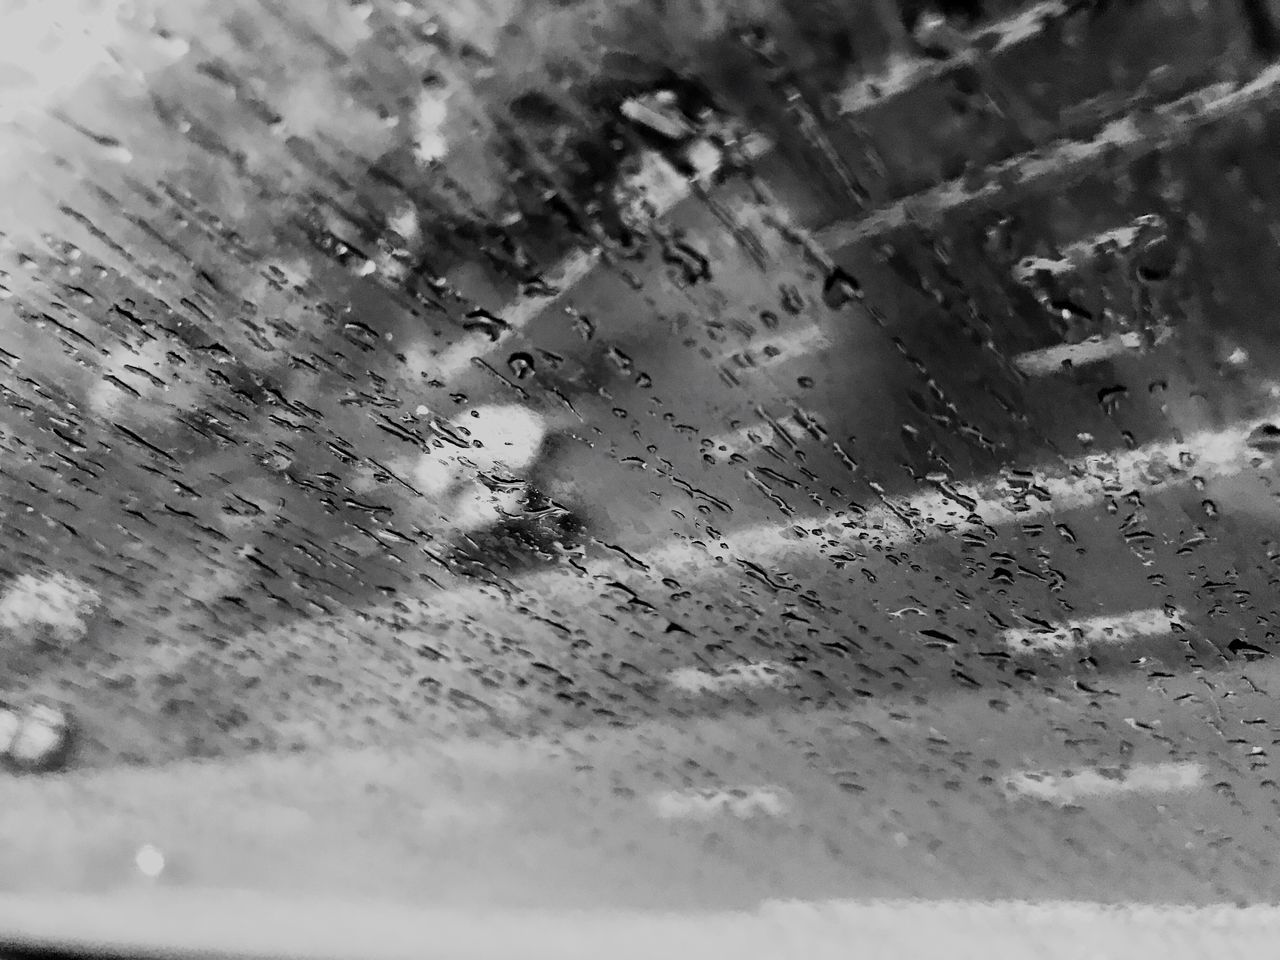 Full Frame Close-up No People Indoors  Window Day Backgrounds Water IPhoneography Philippines Photos Iphoneonly Glass Waterfall Rainy Days raindrop Raind Drops Philippines The Street Photographer - 2017 EyeEm Awards EyeEmNewHere